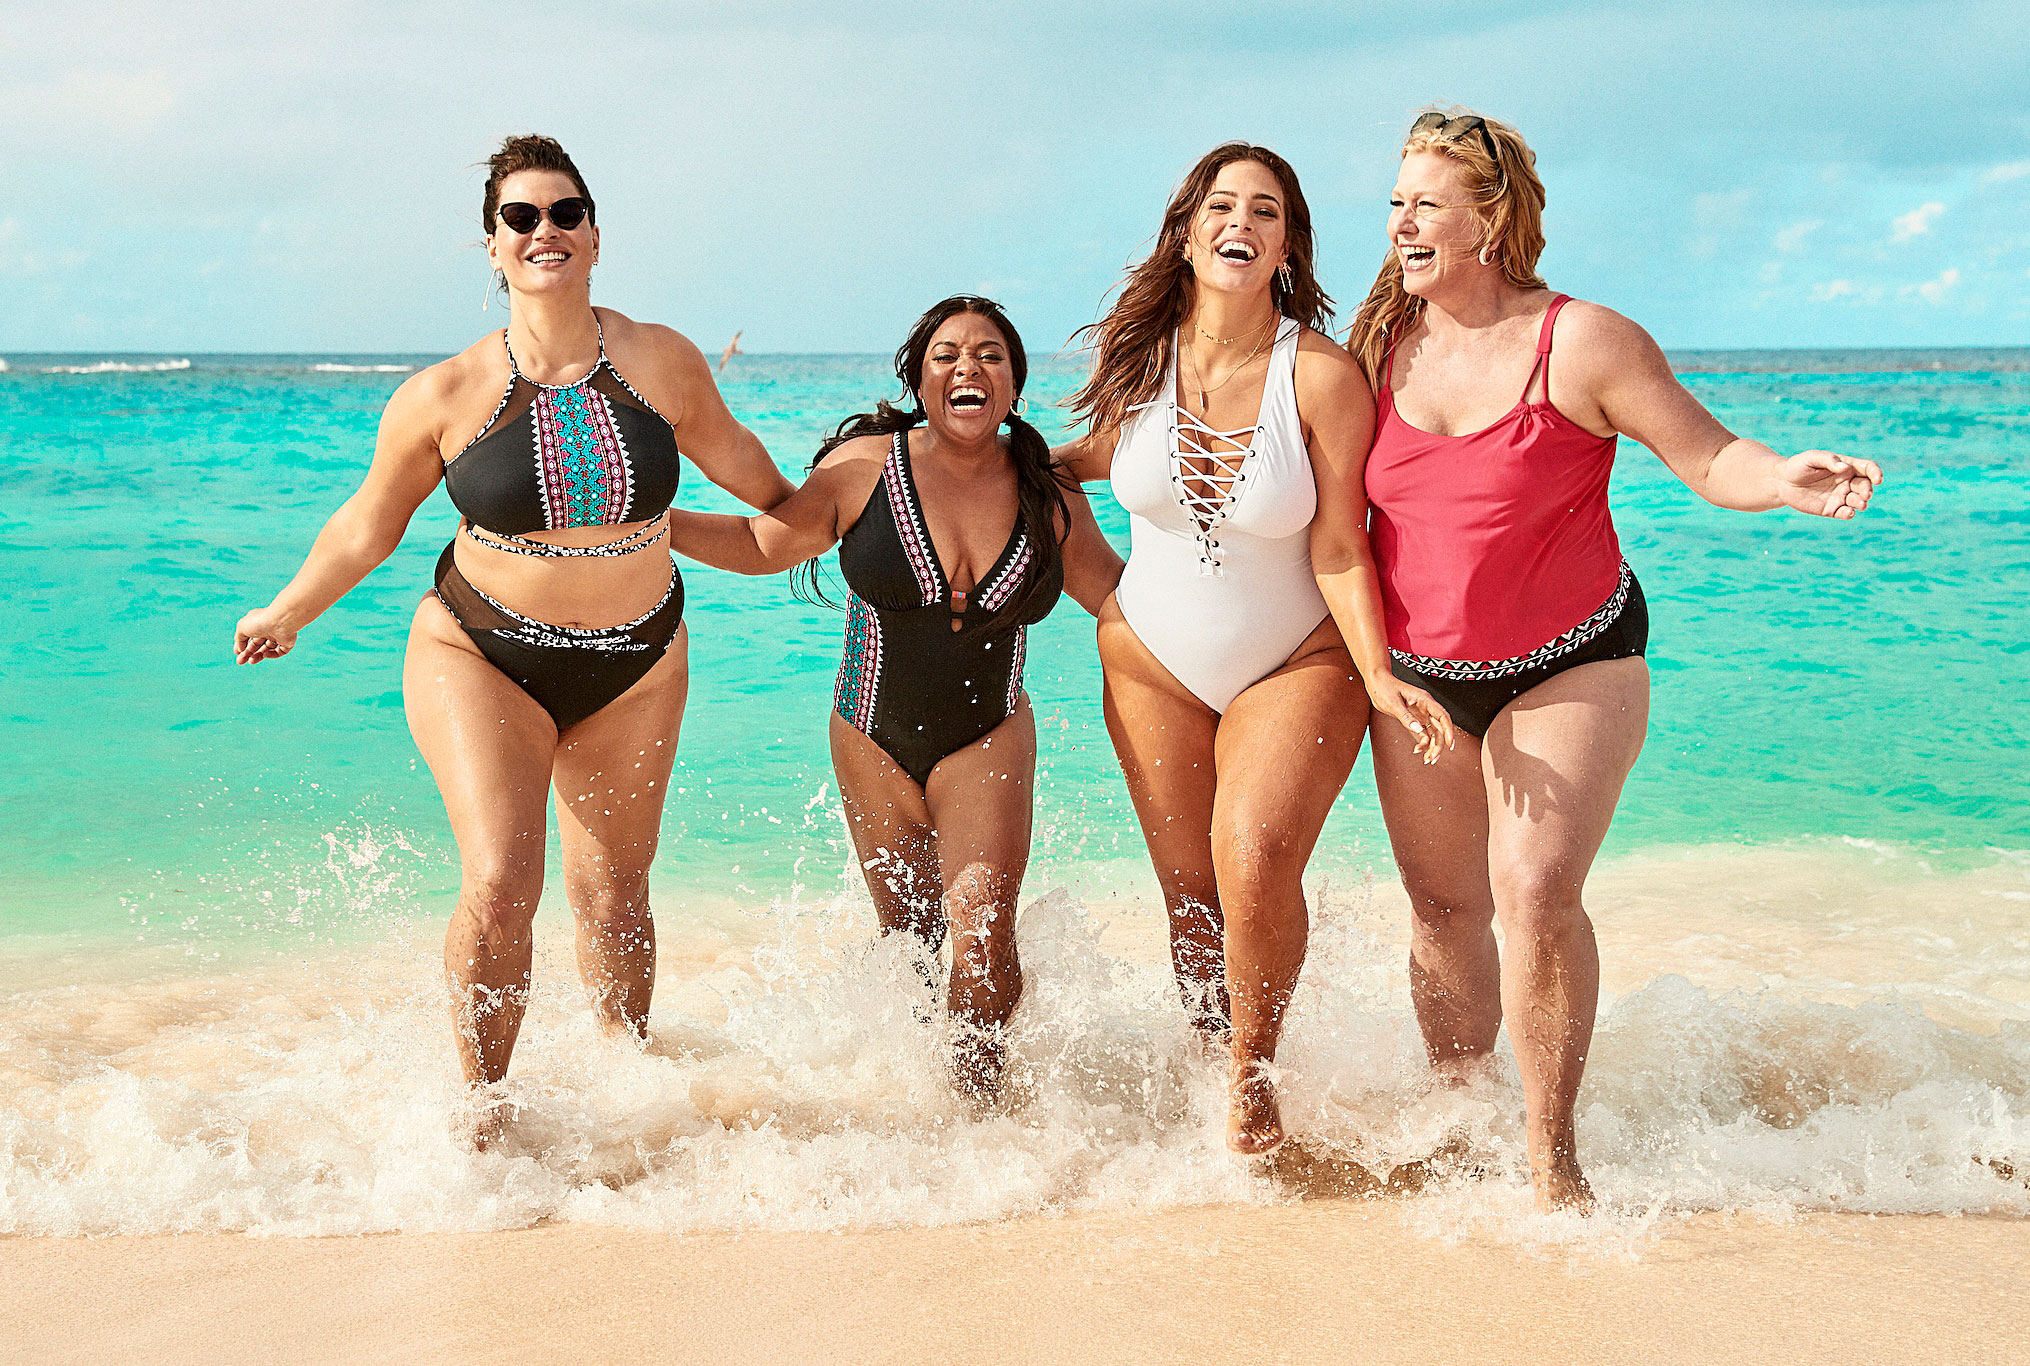 "Ashley Graham Sherri Shepherd Lead Body-Positive Swim Campaign - ""I'm the kind of girl who wants to go to the beach and feel supported but also sexy,"" Graham, in white, told Us in January 2019. ""I don't want to have to think about wearing something matronly."""